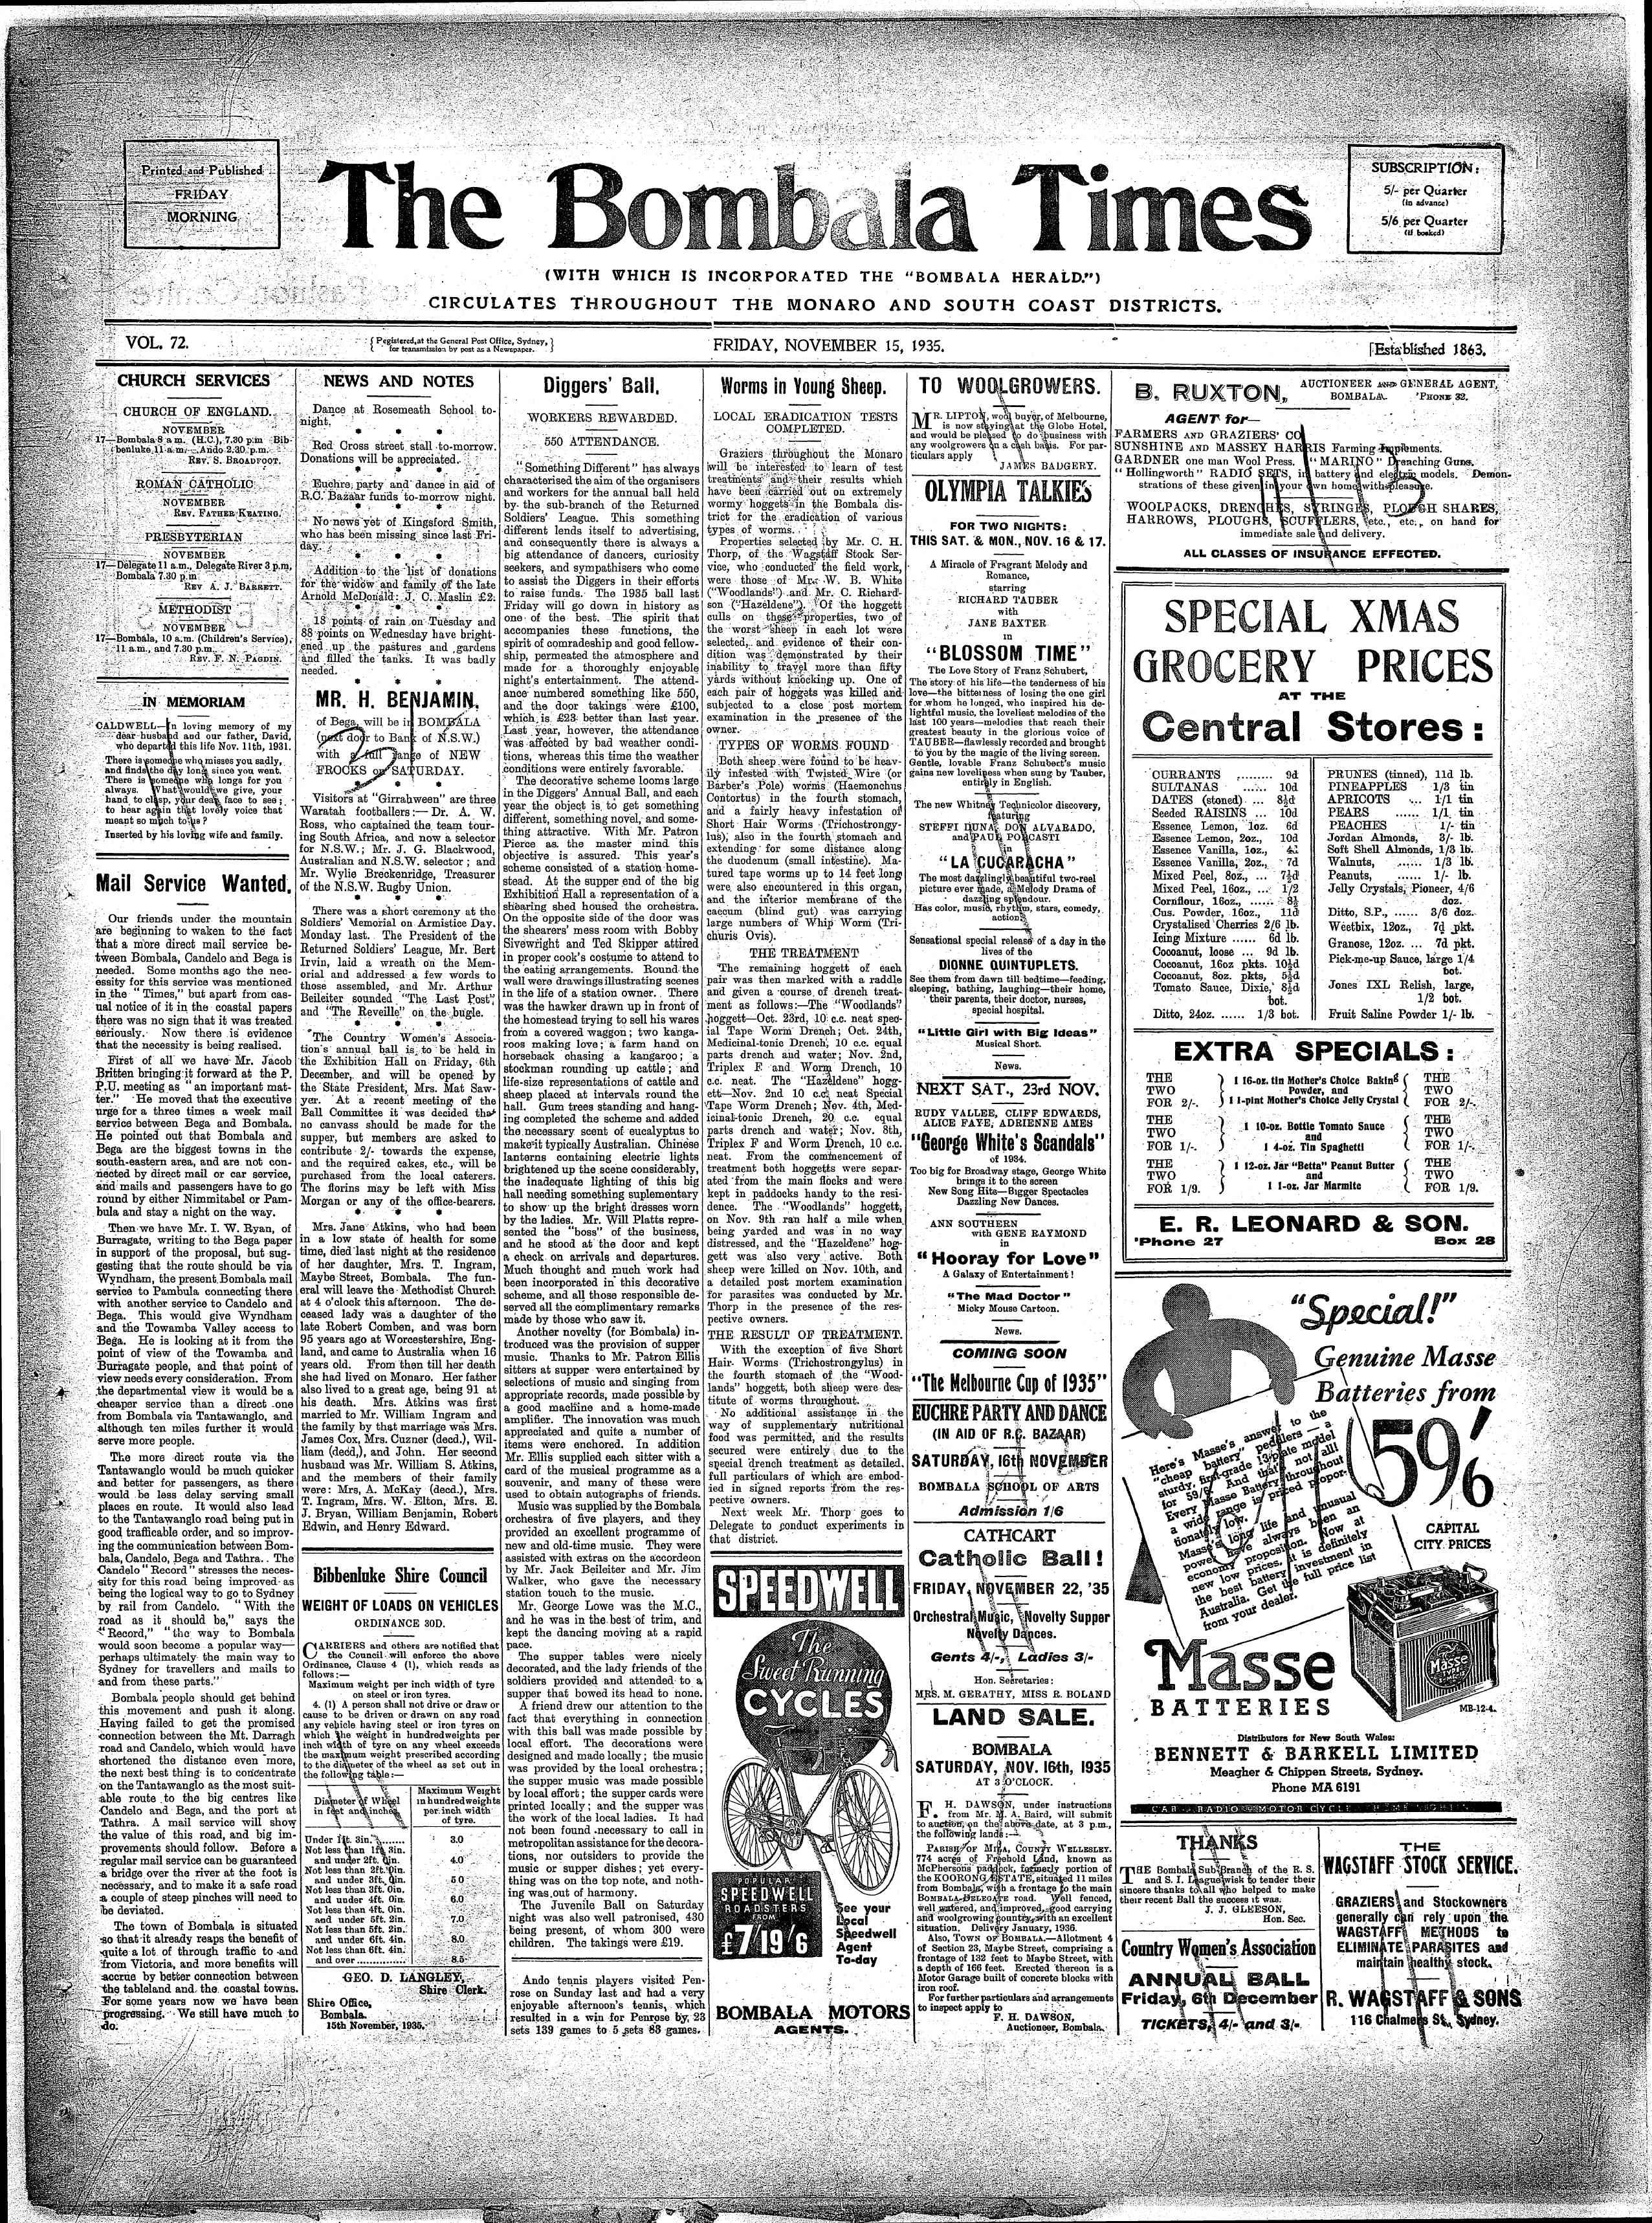 Bombala times nsw australian newspapers myheritage family discover your ancestry search birth marriage and death certificates census records immigration lists and other records all in one family search aiddatafo Images